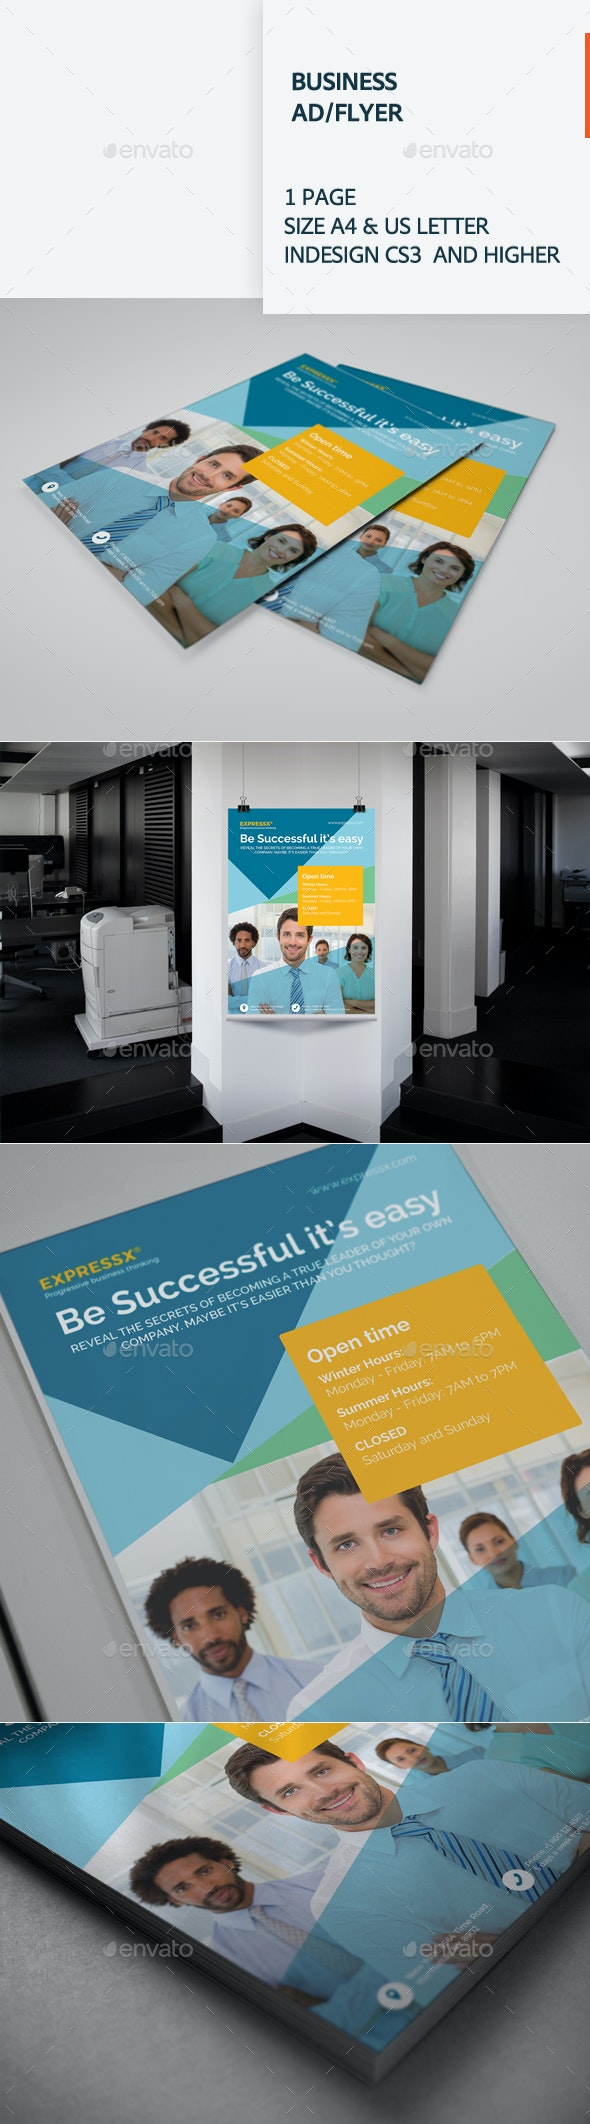 Business Ad / Flyer - Corporate Flyers